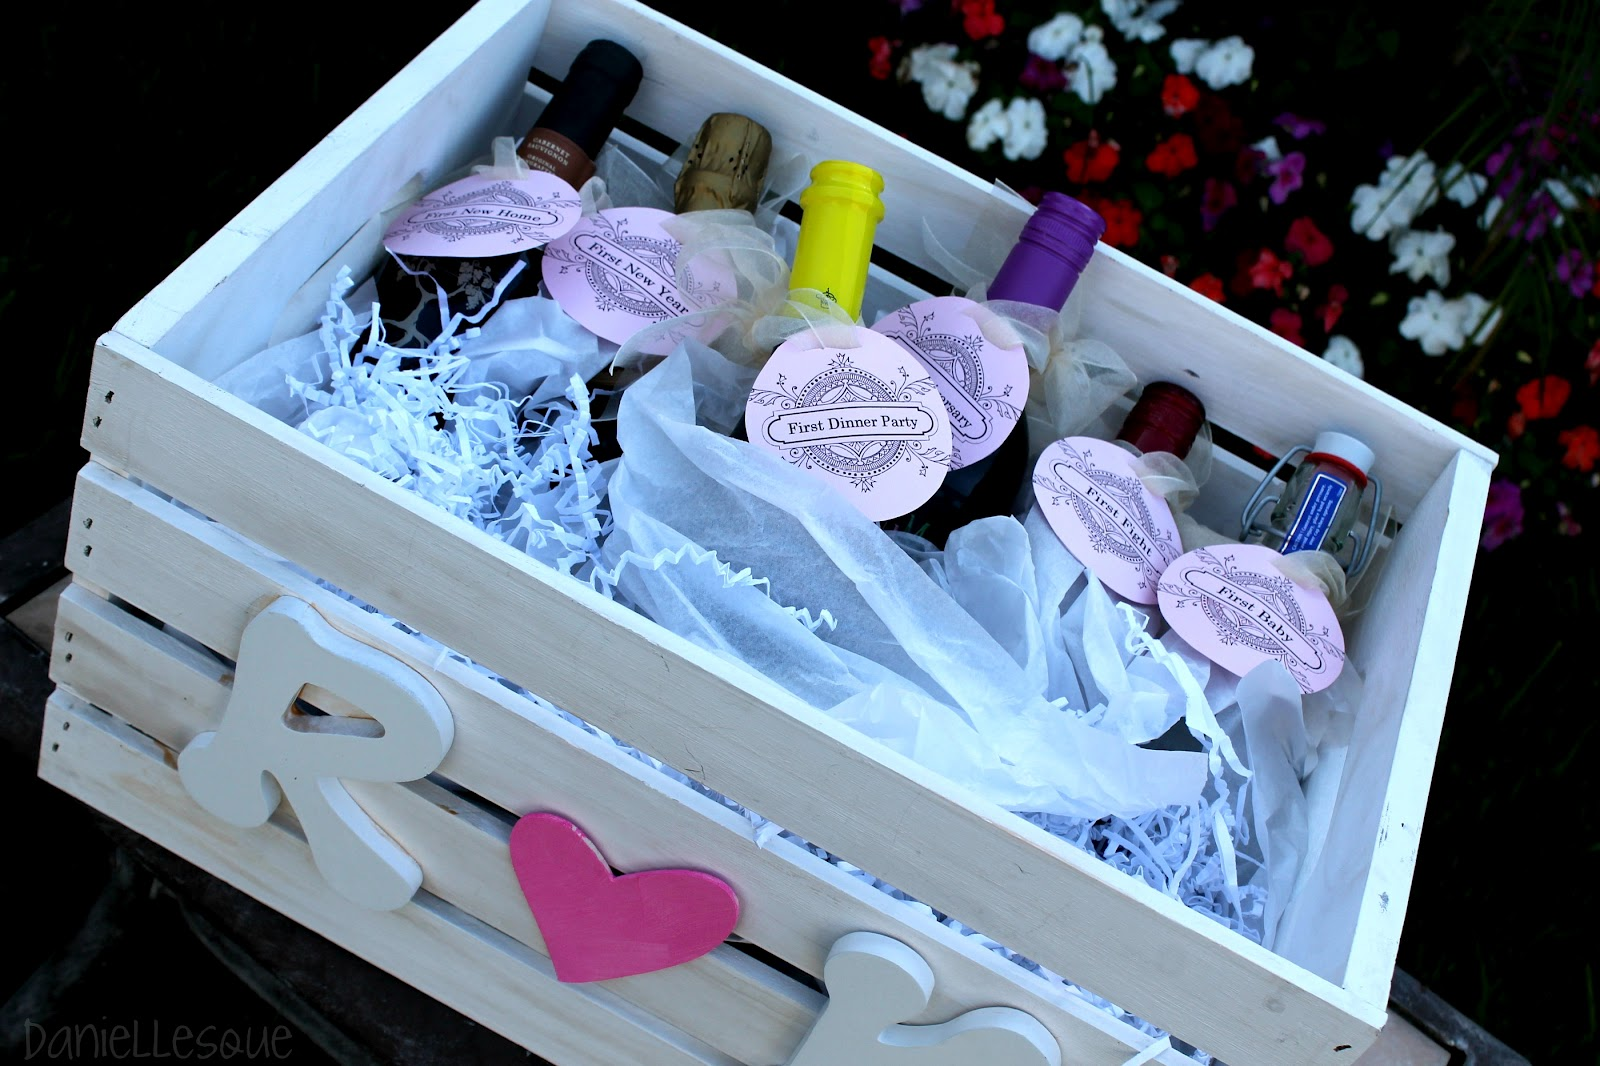 Wedding Shower Gift Themes: Daniellesque: Bridal Shower Gift: Basket Of Firsts